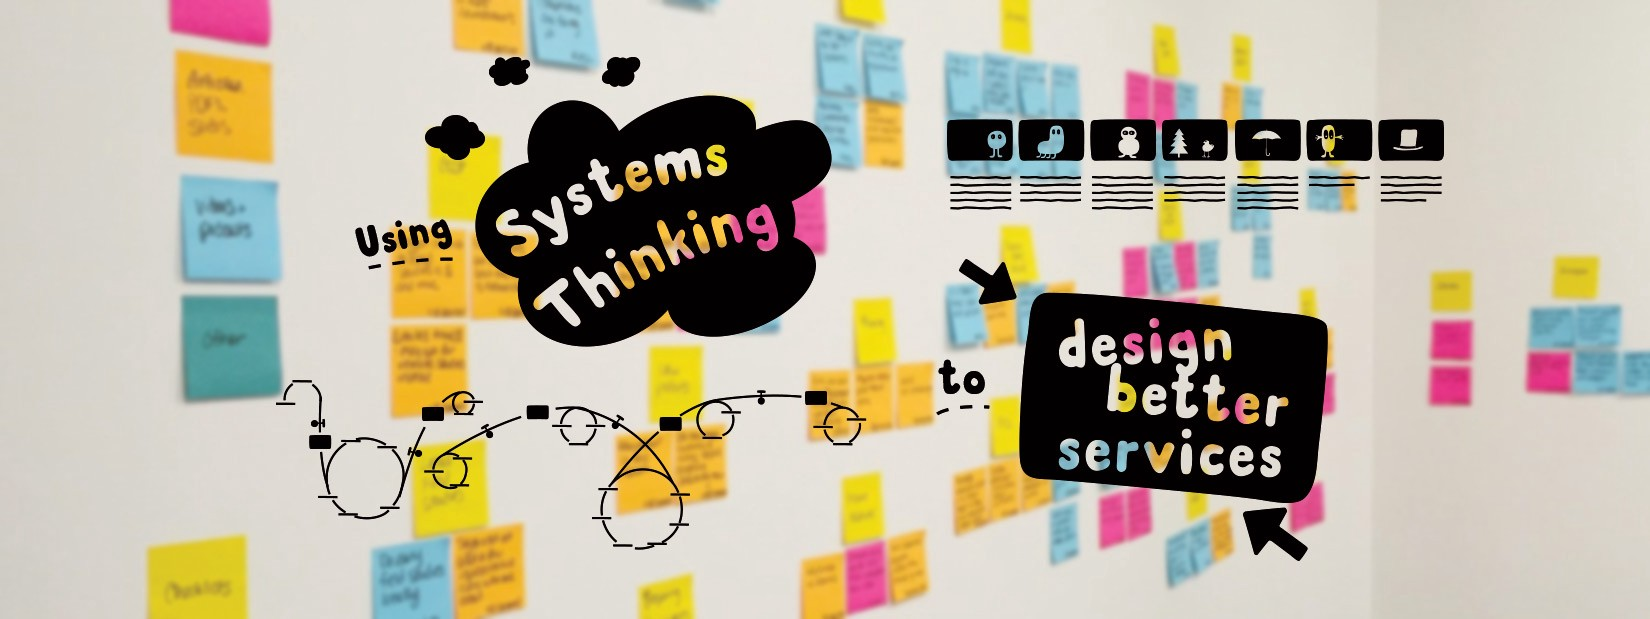 Using systems thinking to design better services mike laurie medium when creating new services for clients we very often dont delve deep enough into the organisation that delivers the service service solutions are often malvernweather Images